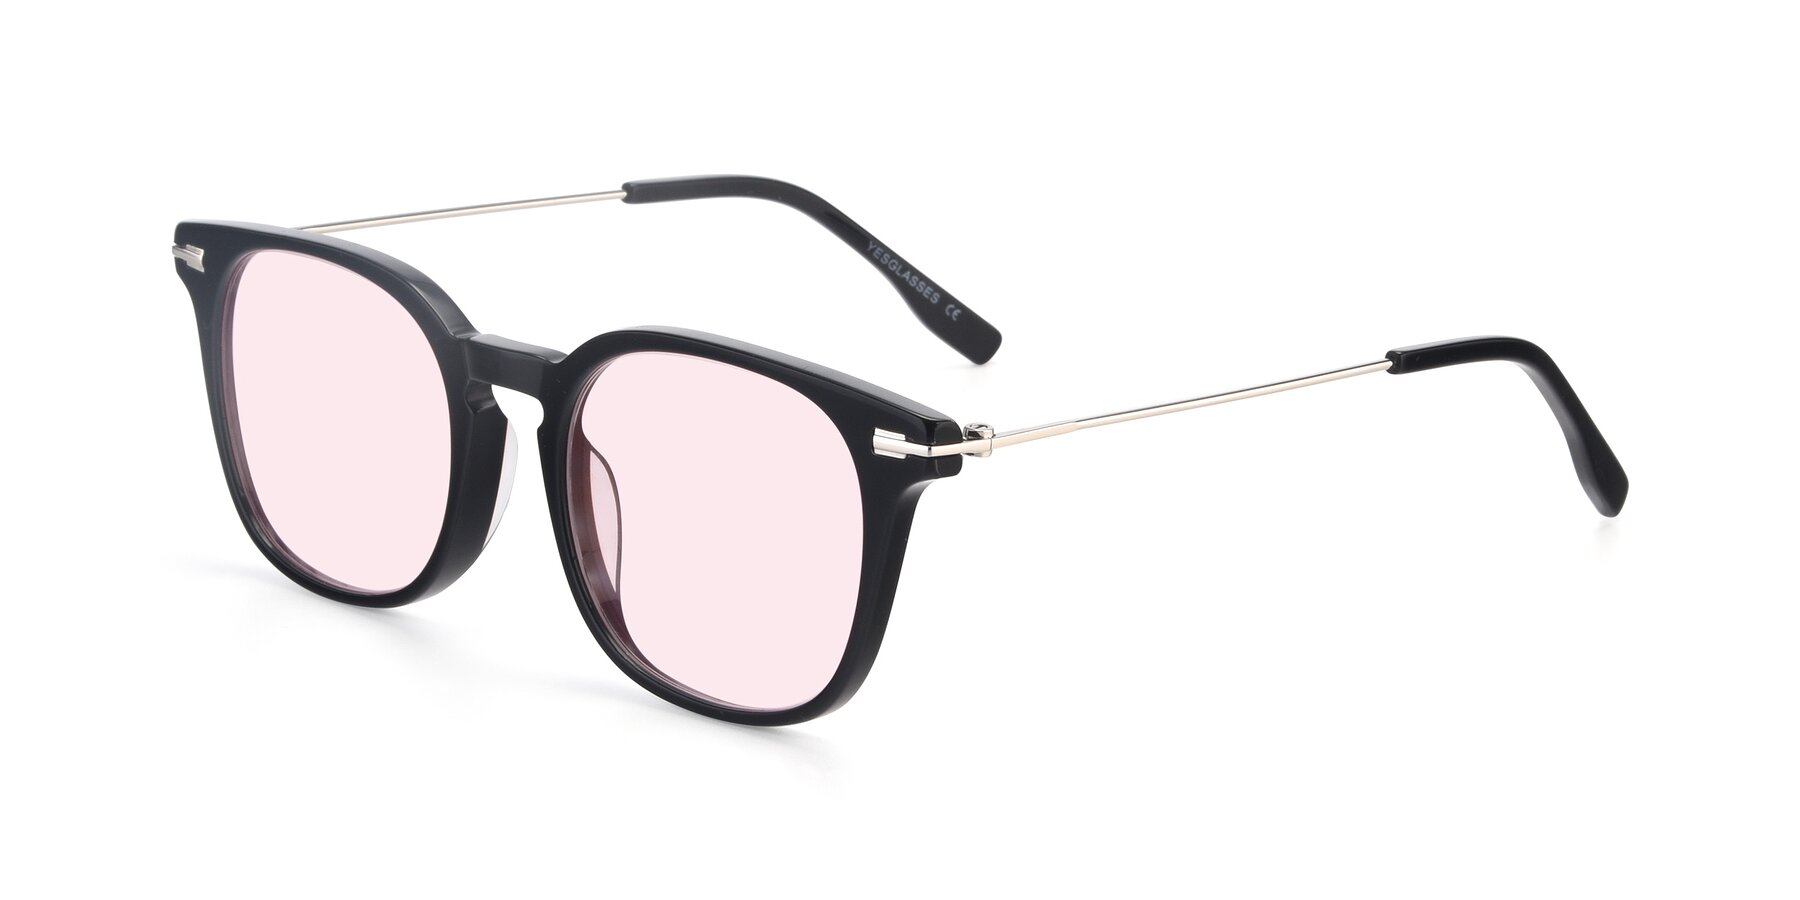 Angle of 17711 in Black with Light Pink Tinted Lenses